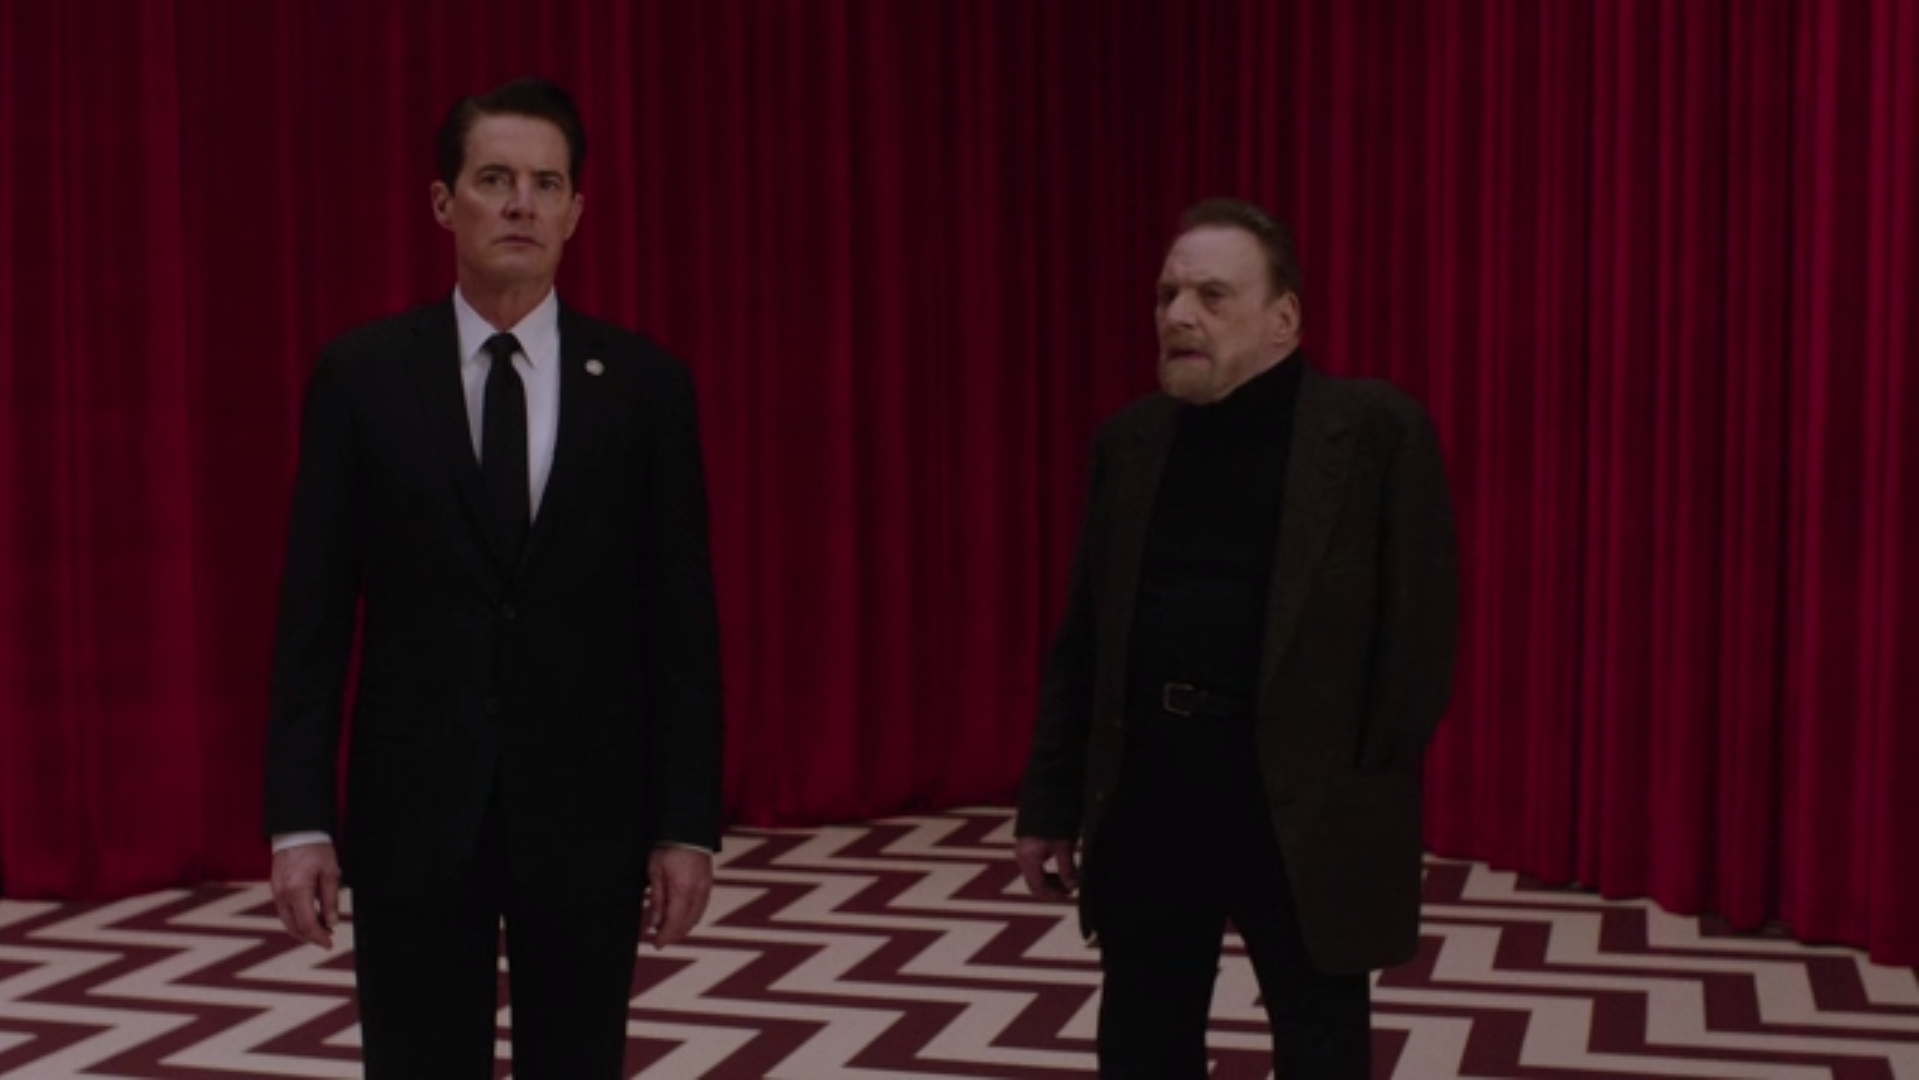 Twin Peaks premiere: the first 2 episodes, explained in 7 shots